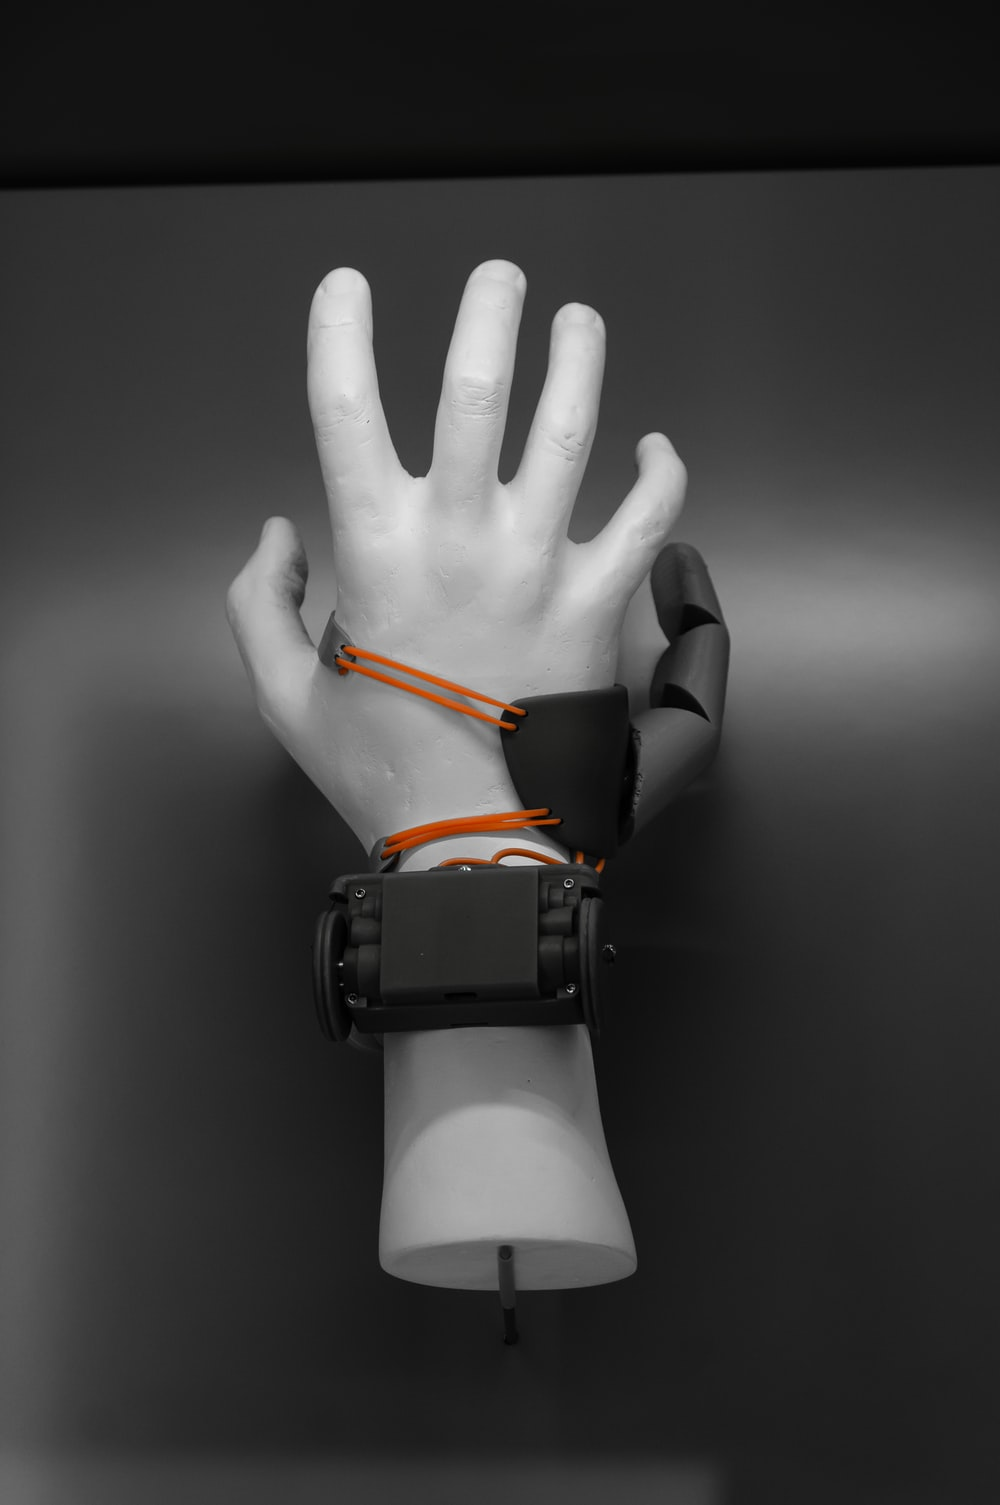 person wearing black and orange watch